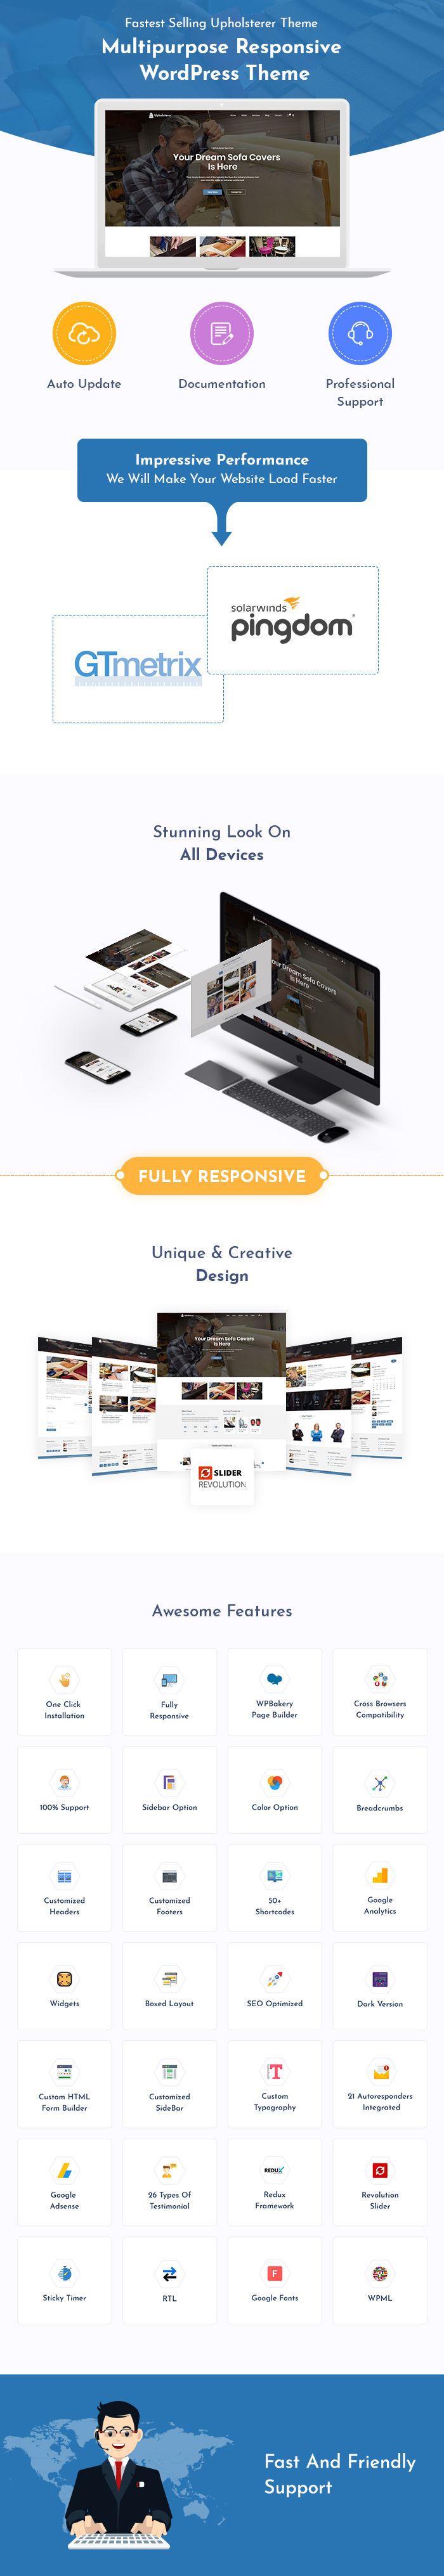 Upholsterer WordPress Themes